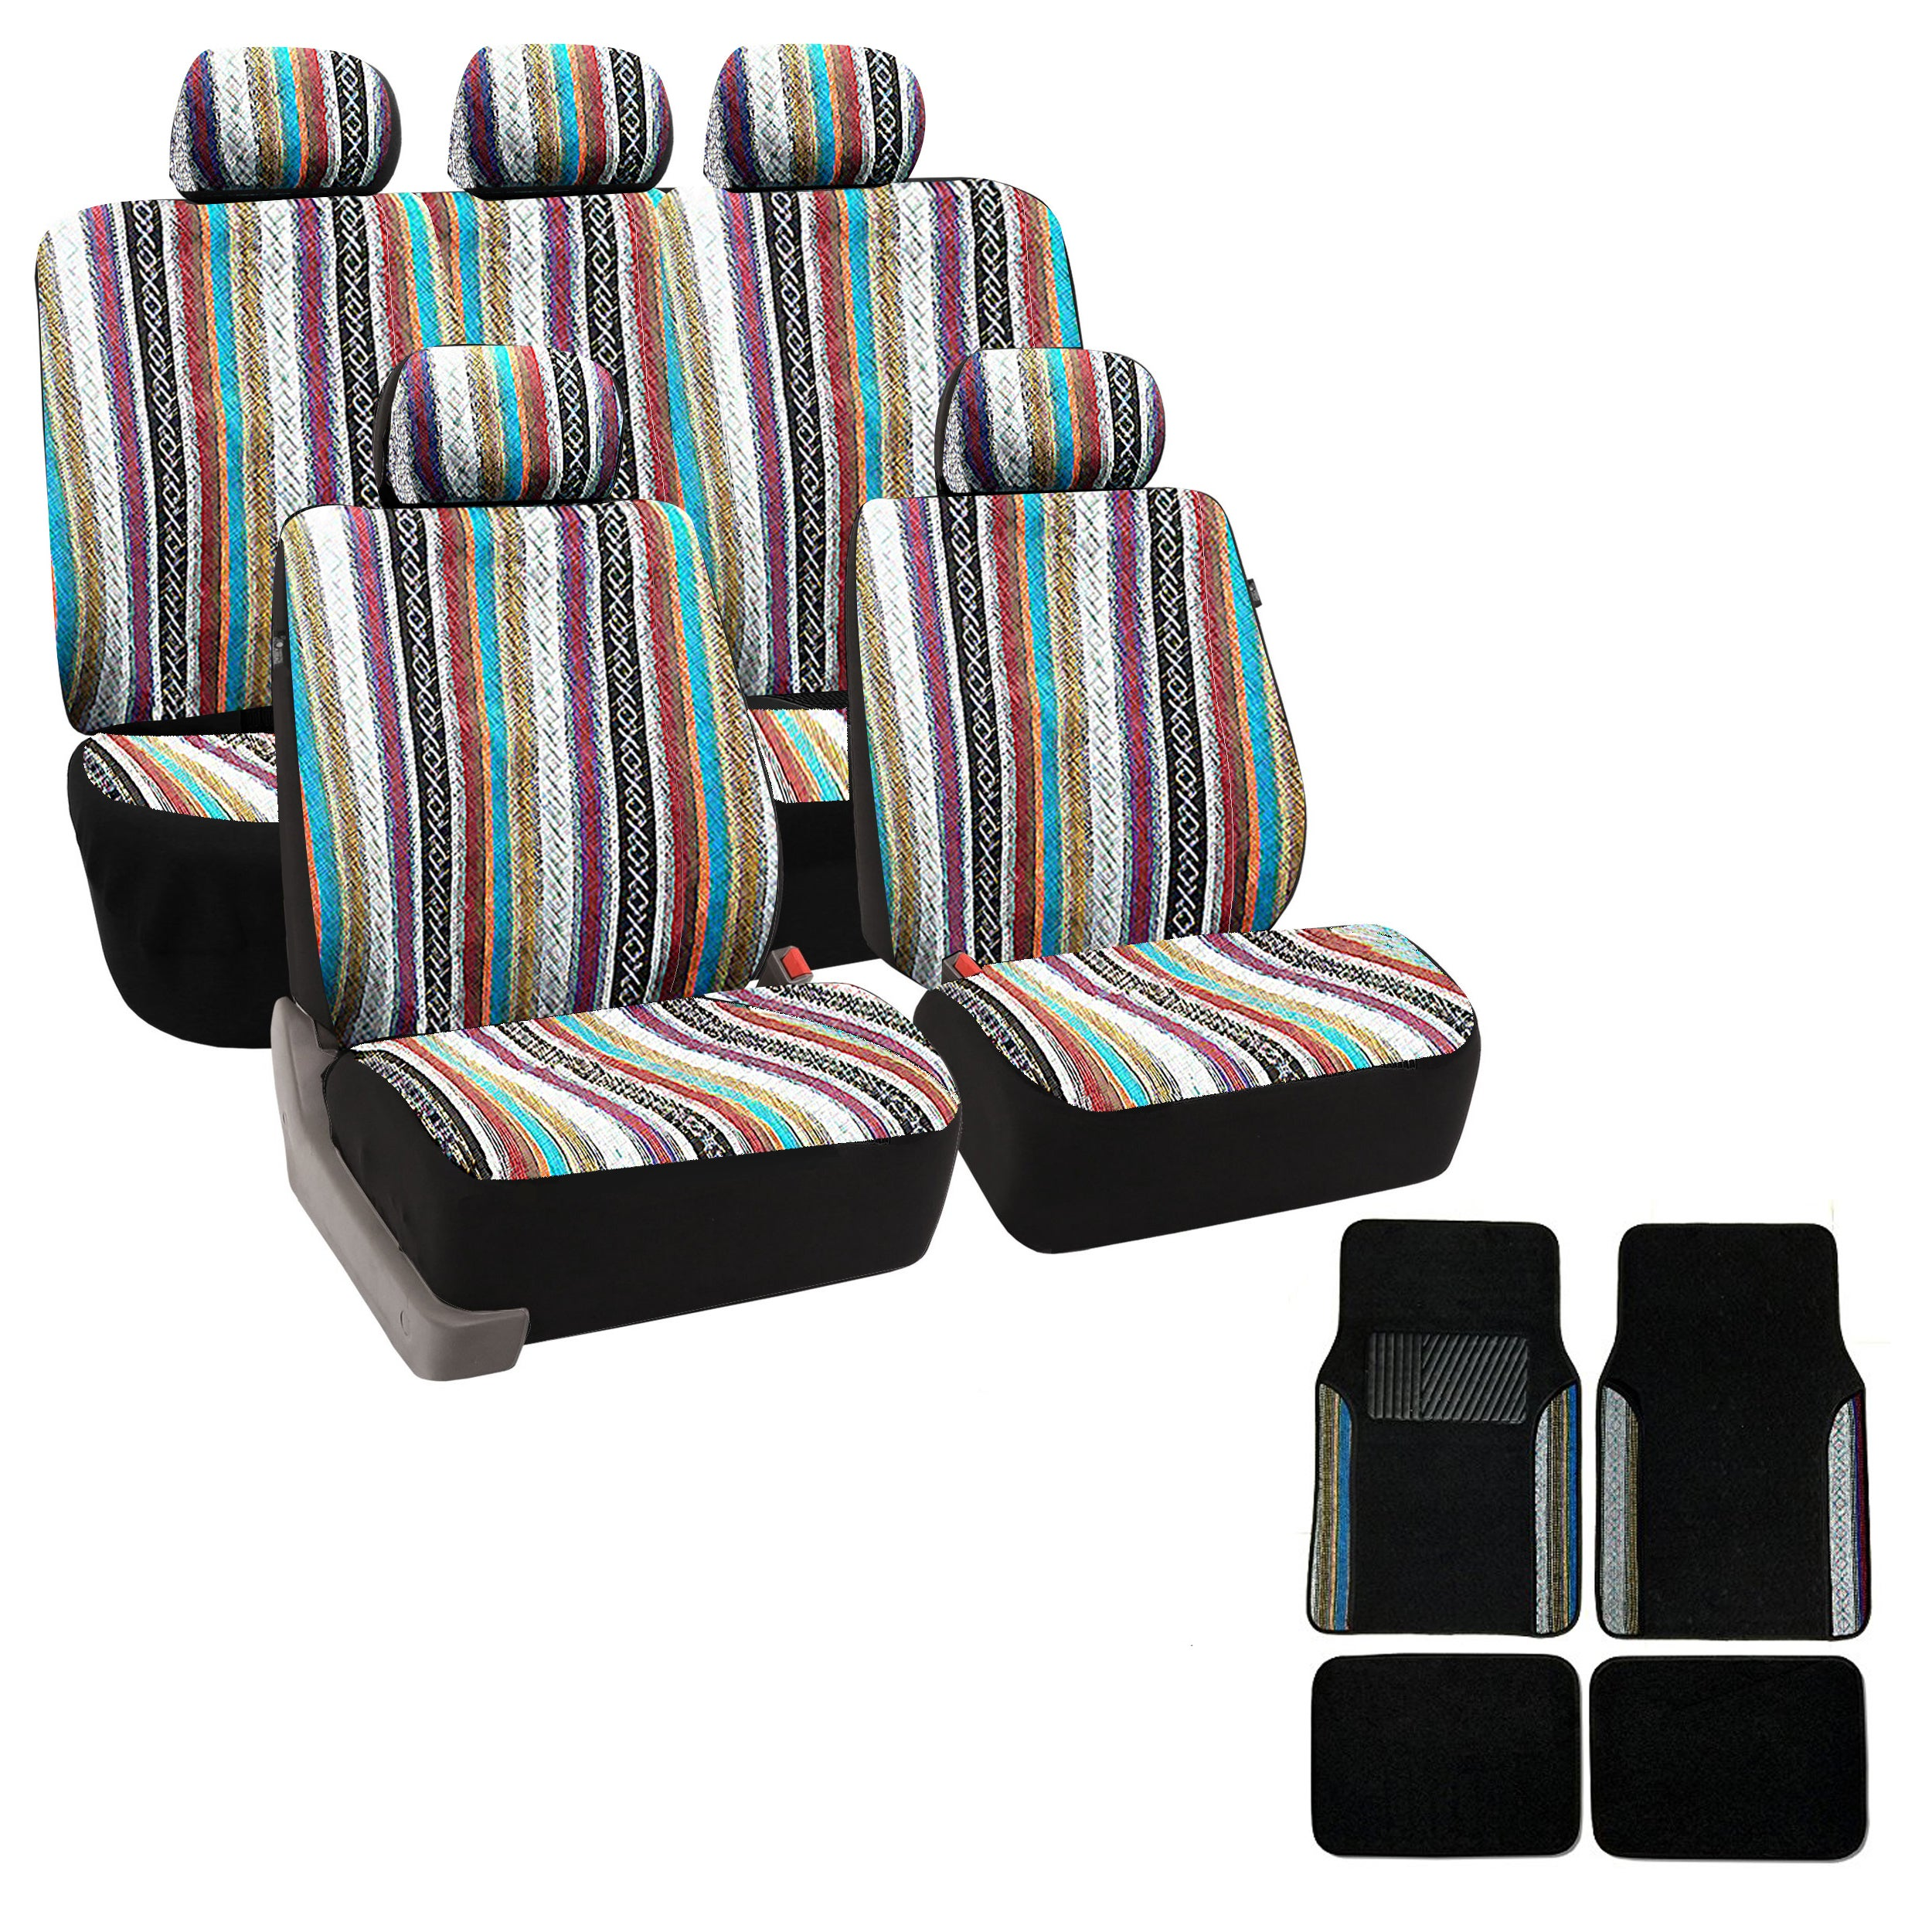 Tremendous Cloth Baja Inca 12 Piece Saddle Blanket Seat Covers Set With Match Plush Two Tone Carpet Floor Mat Inzonedesignstudio Interior Chair Design Inzonedesignstudiocom